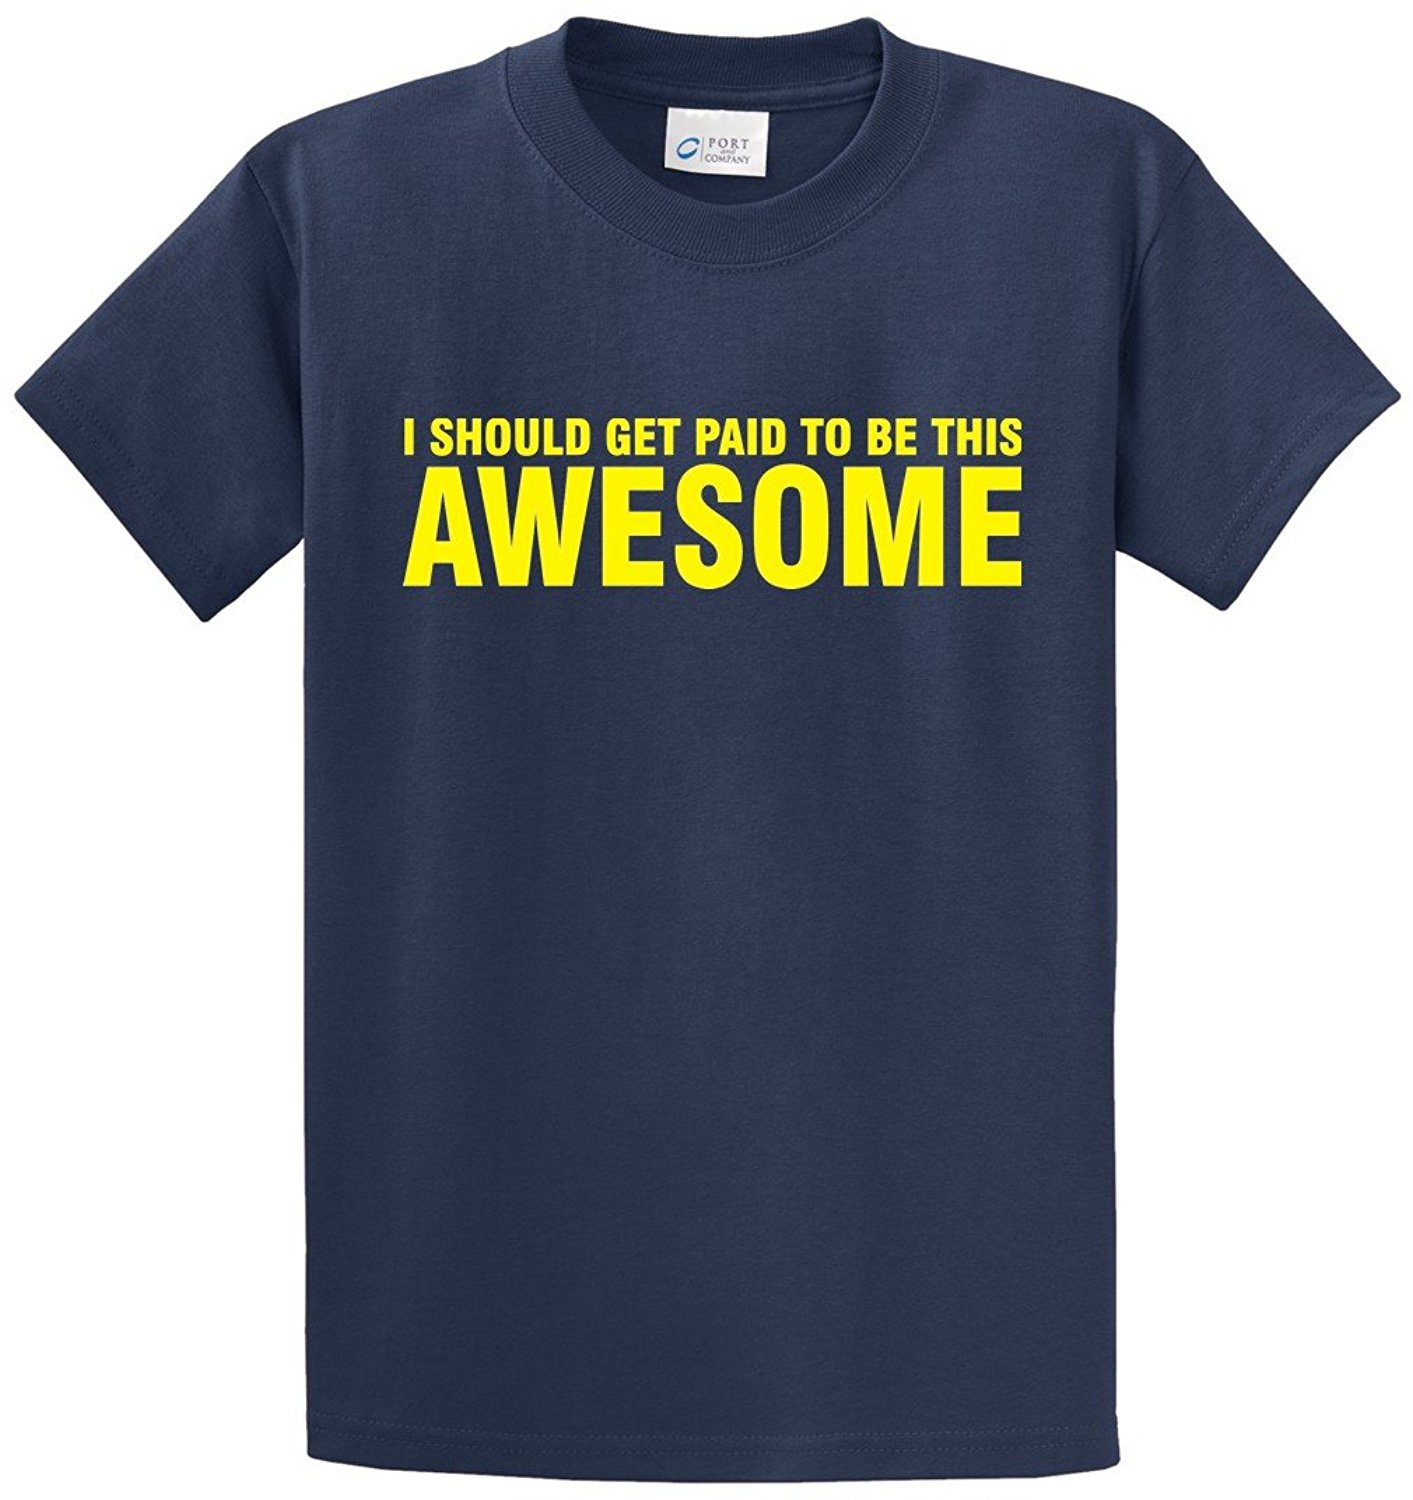 Design t shirt and get paid - Meil T Shirts For Men Online Shopping Paid To Be Awesome Printed Tee Shirt